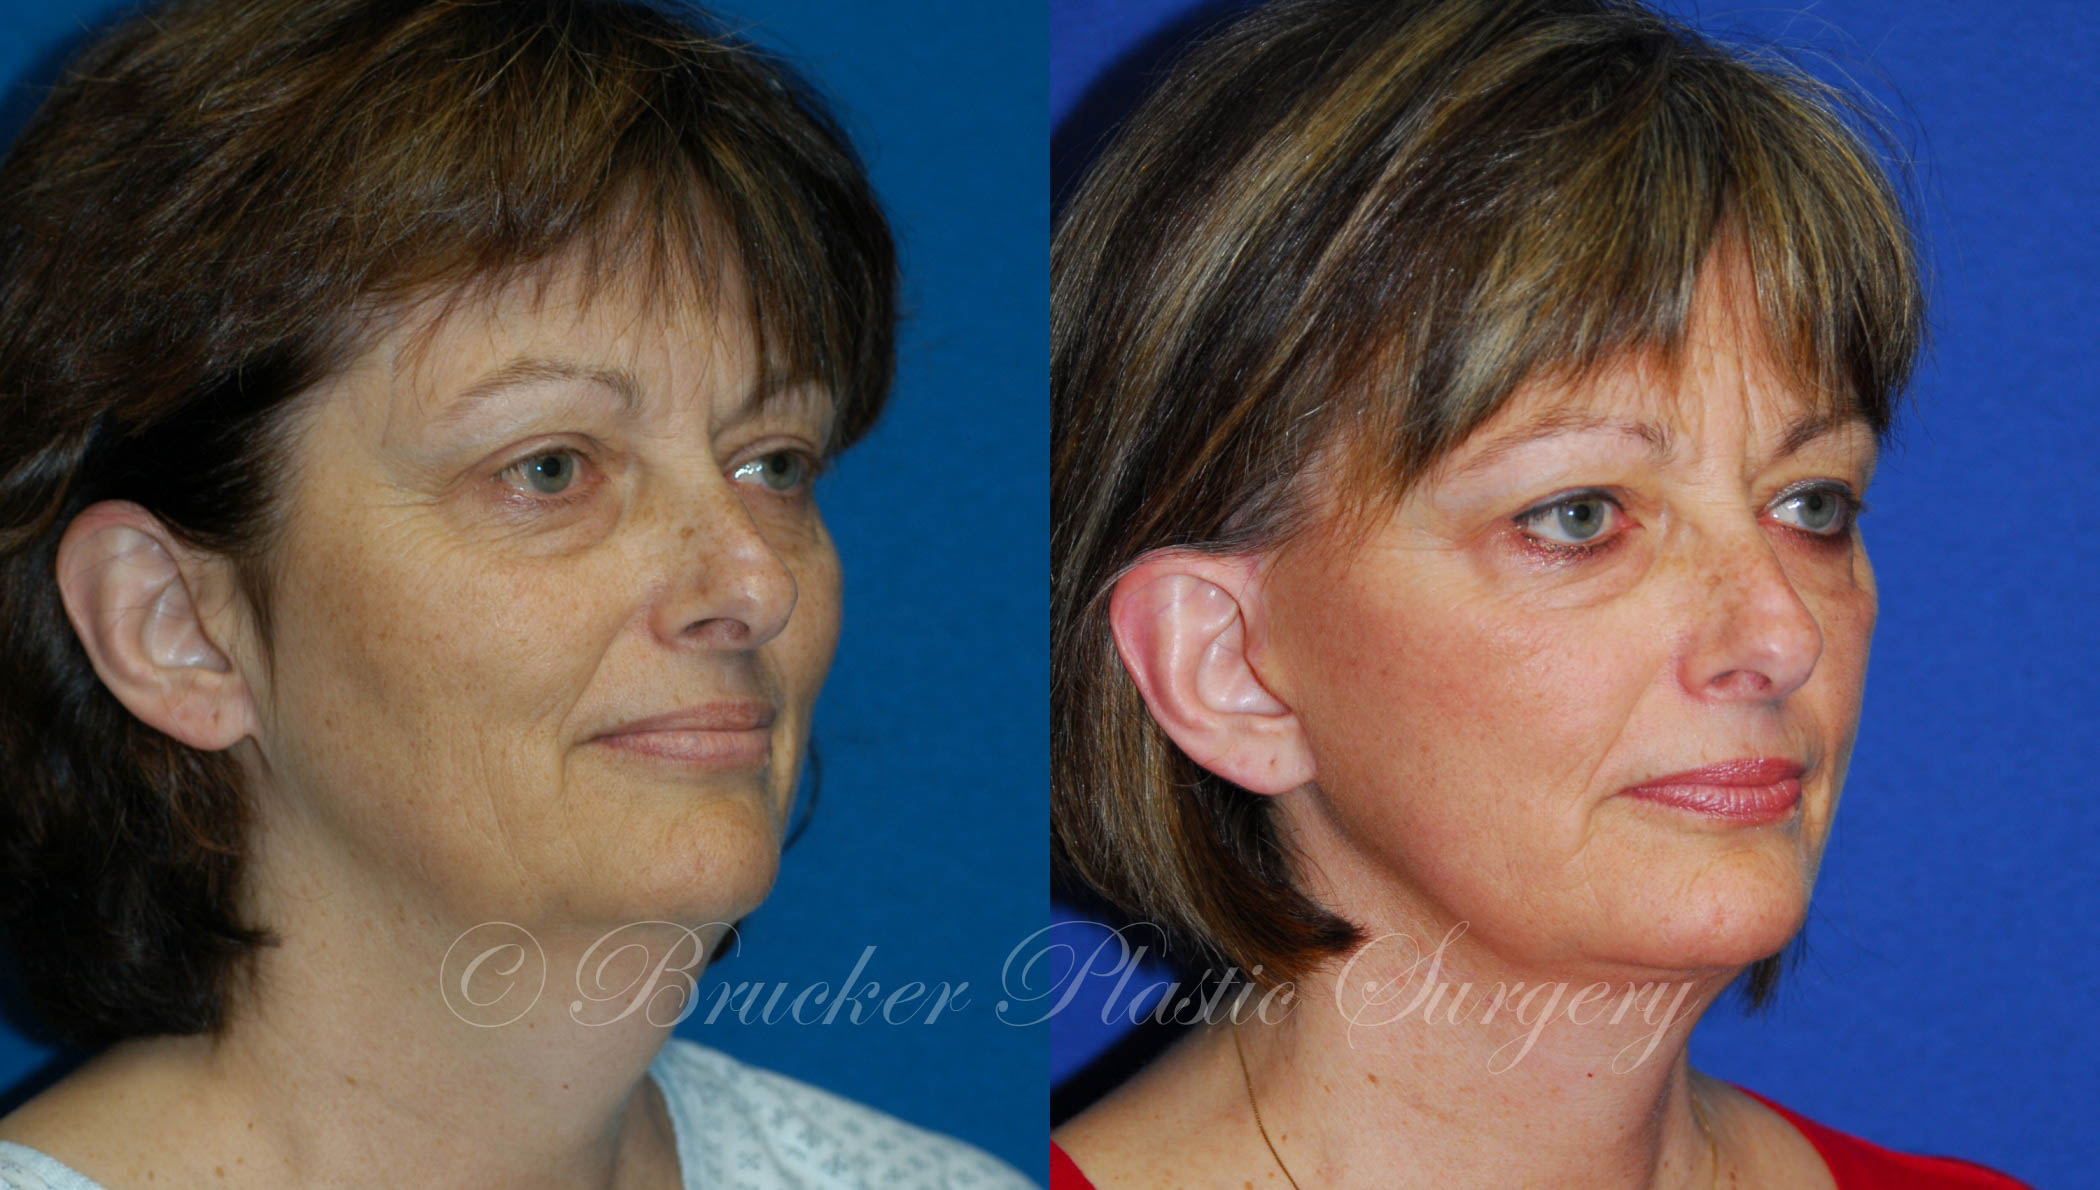 Facelift La Jolla Patient 1.2